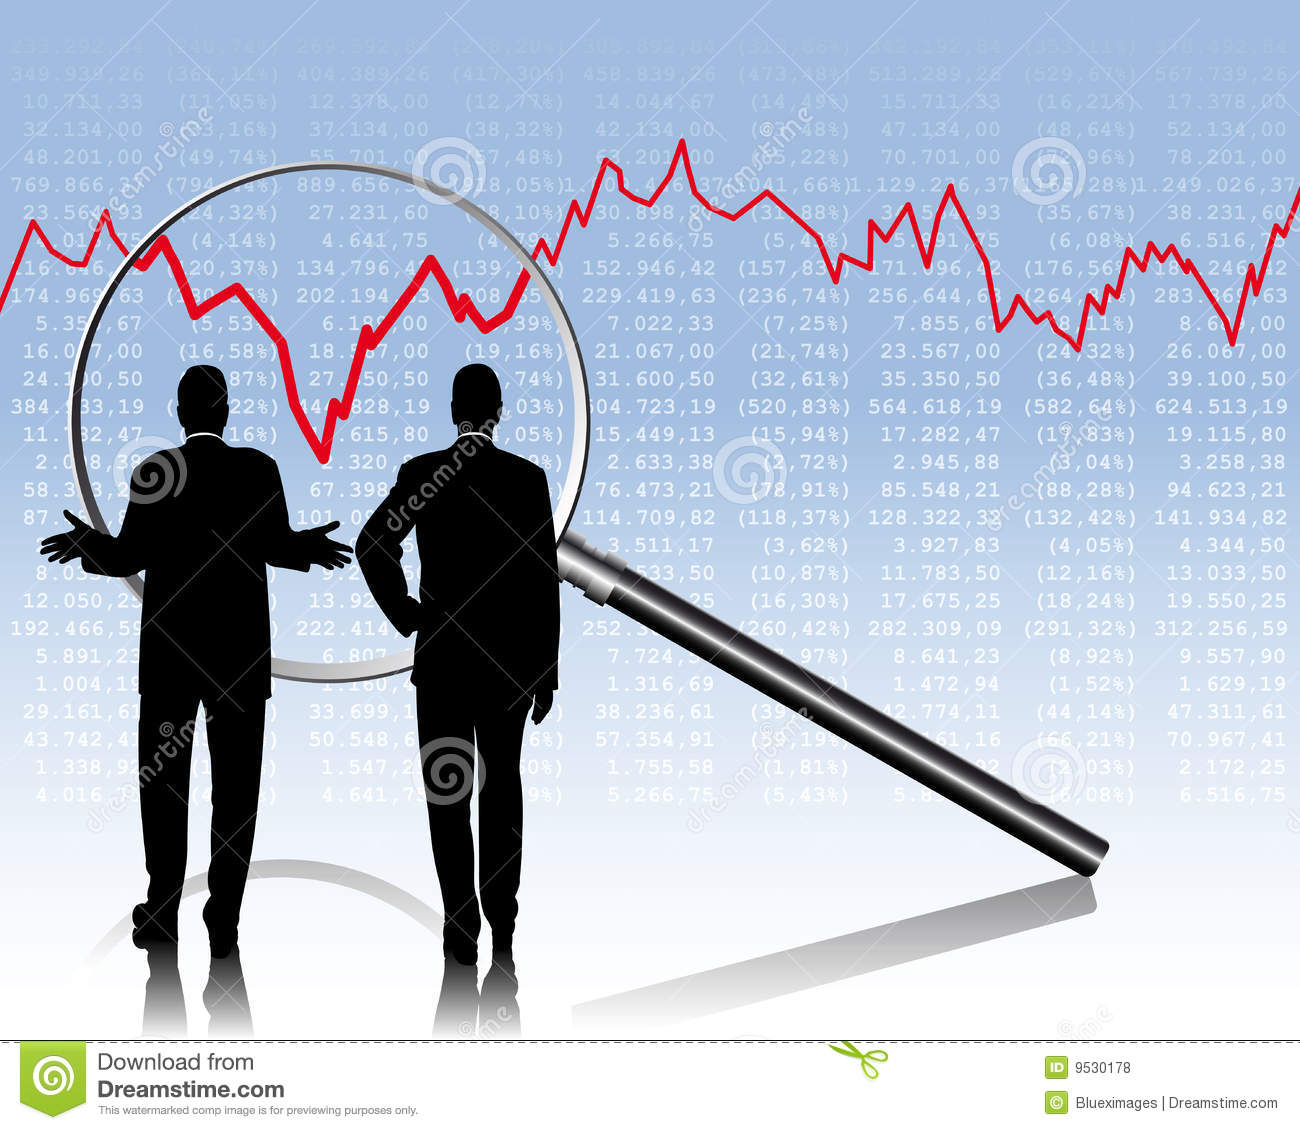 Dow Quotes Real Time: Stock Quotes Stock Vector. Illustration Of Course, Curves